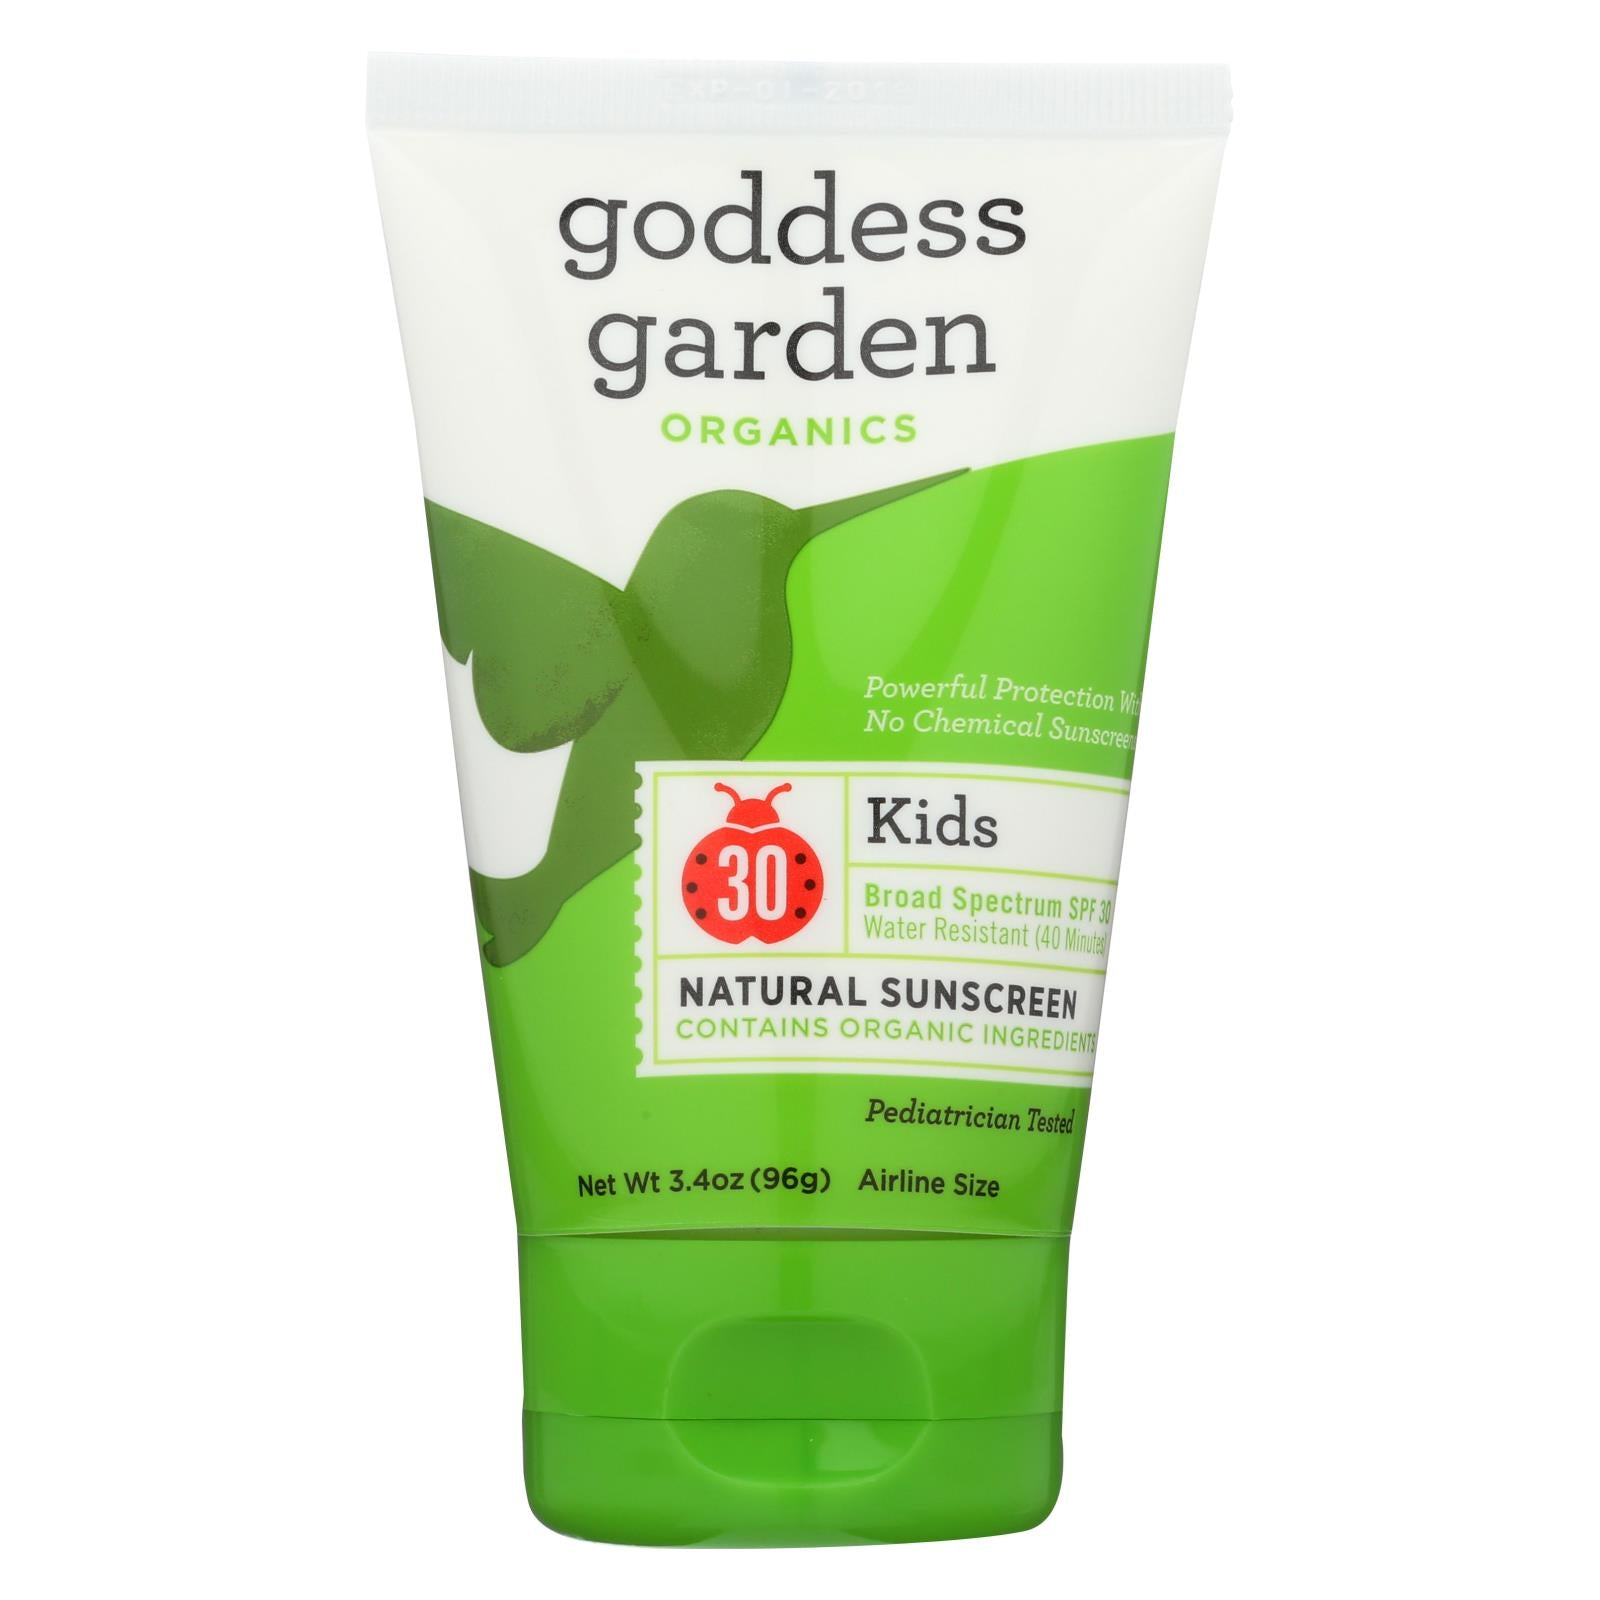 Buy Goddess Garden Sunscreen - Organic - Sunny Kids - SPF 30 - 3.4 fl oz - Baby Skin and Sun from Veroeco.com